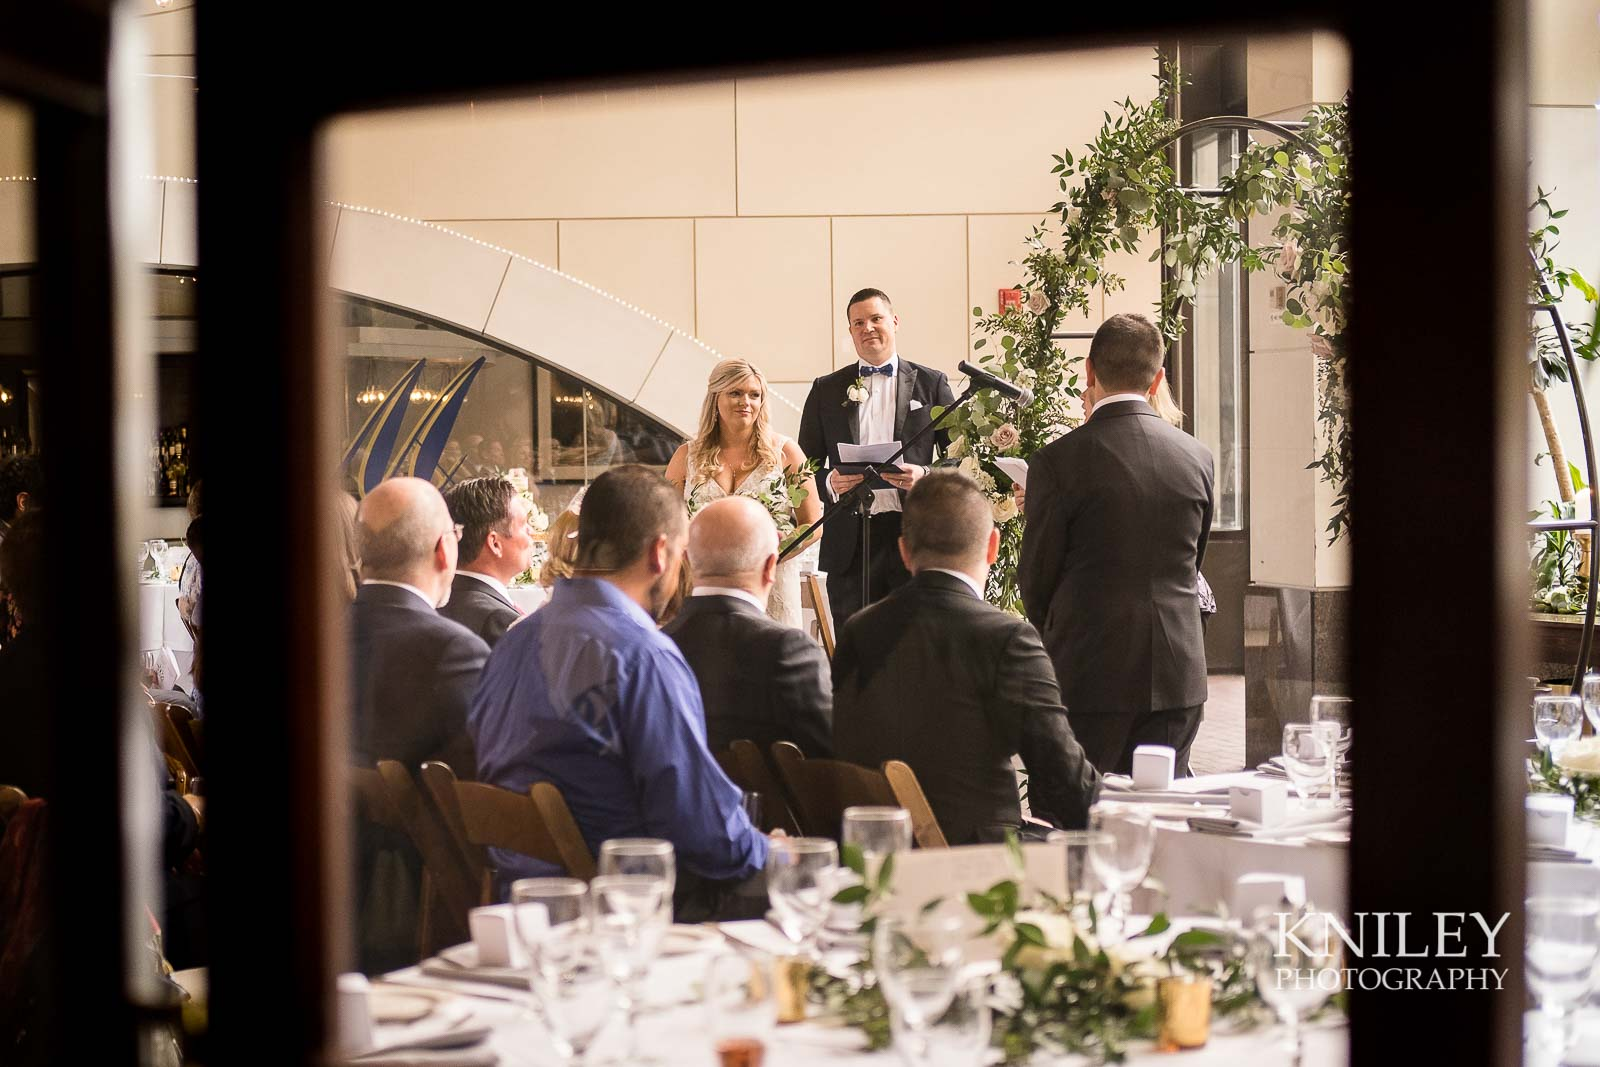 26-Max-of-Eastman-Wedding-and-Reception-Rochester-NY-Kniley-Photography.jpg